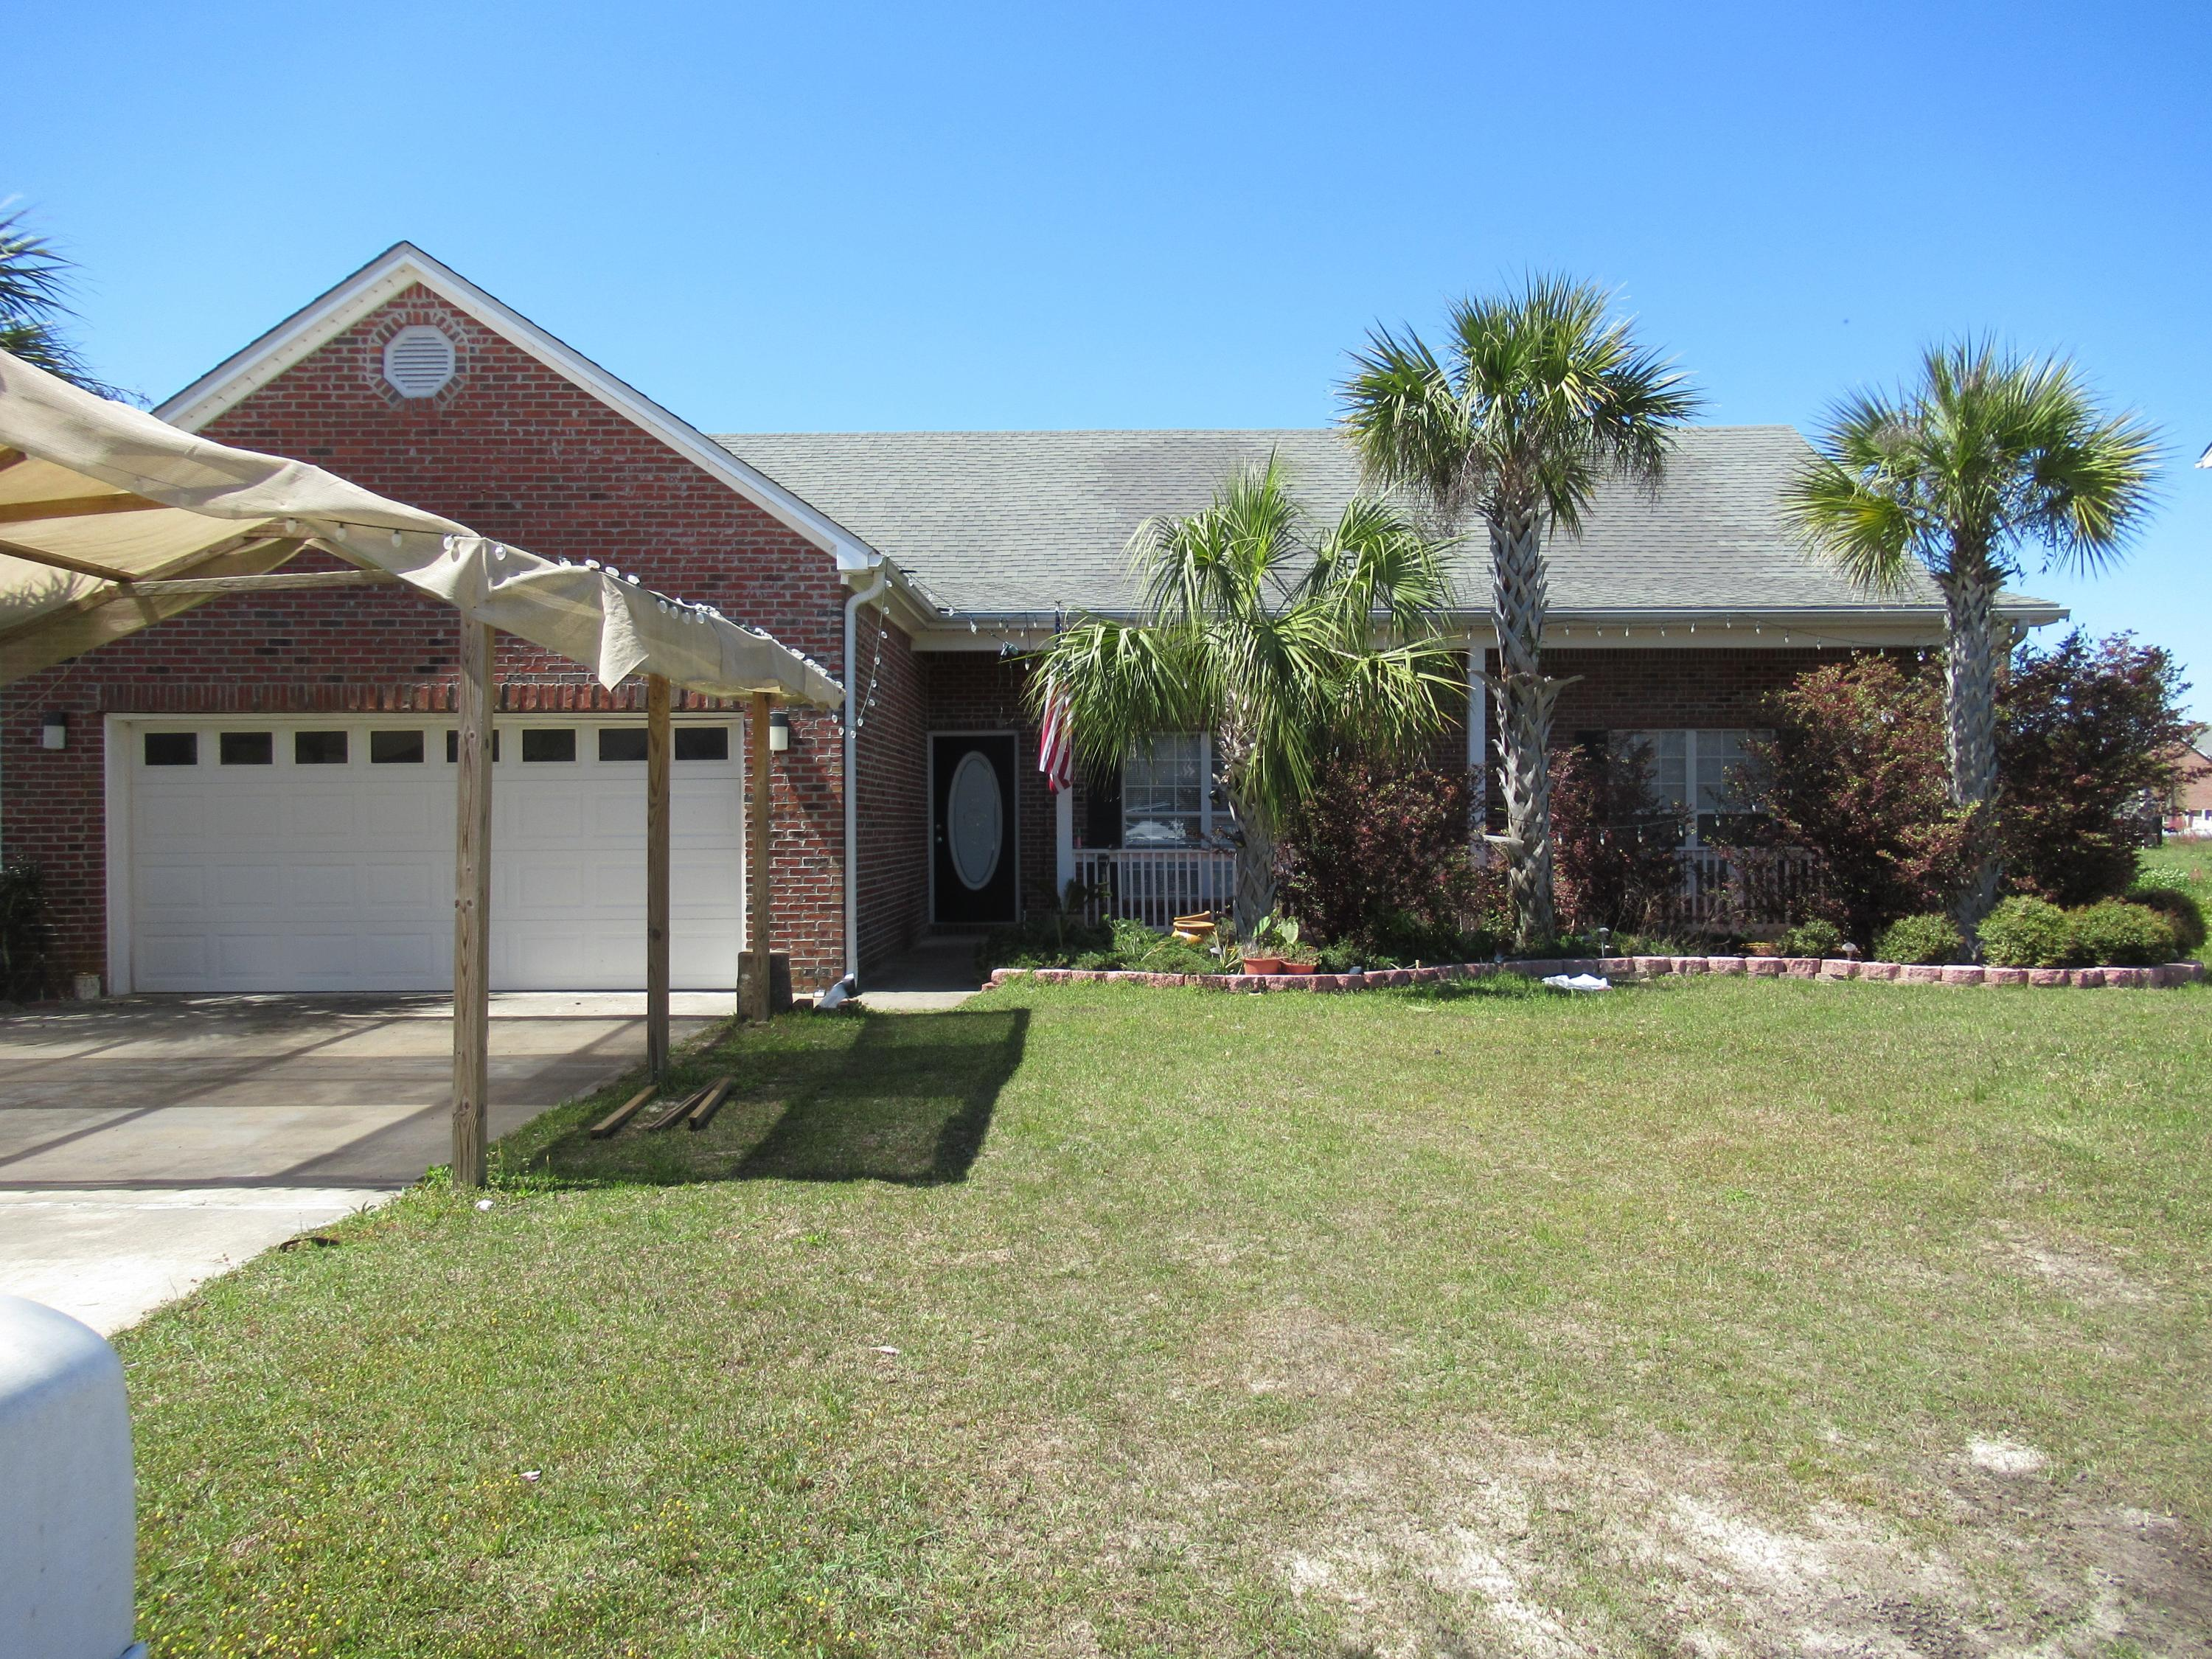 Yea!!!! No HOA's.  AC new in 2018 inside and outside units. Owner will pay the sewer tap fee at closing.This 3 bedroom 2 bath home features a vaulted ceiling and an electric fireplace, nice front porch and backyard patio plus a 2 car garage. Separate dining plus breakfast nook. Oak cabinets and grant countertops.  More pictures when house is cleaned.